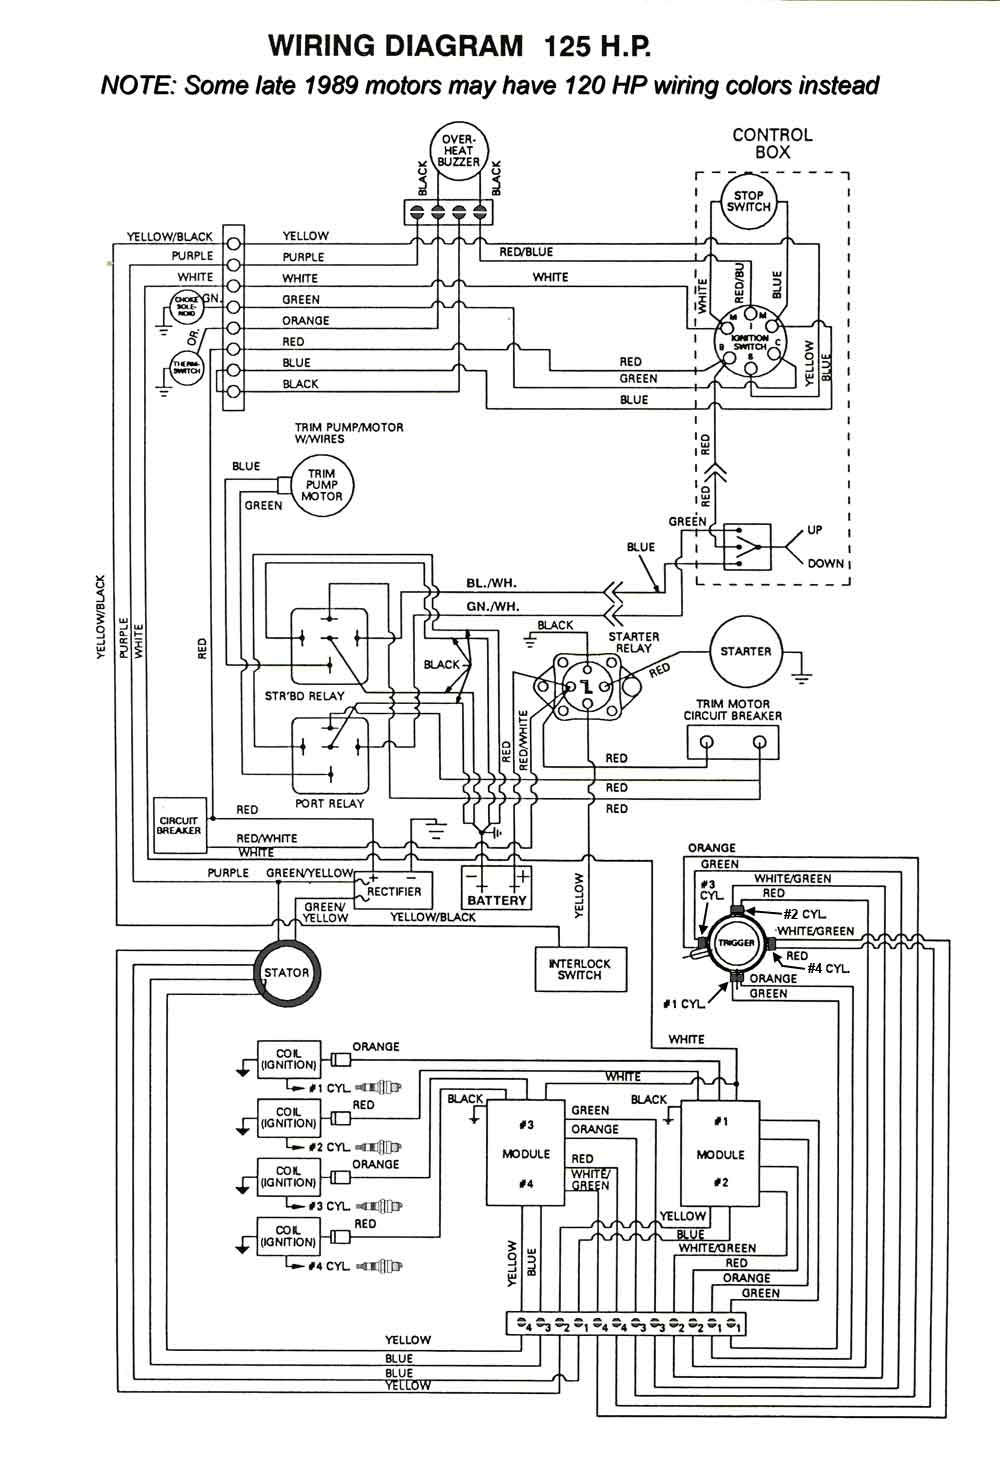 Mastertech marine chrysler force outboard wiring